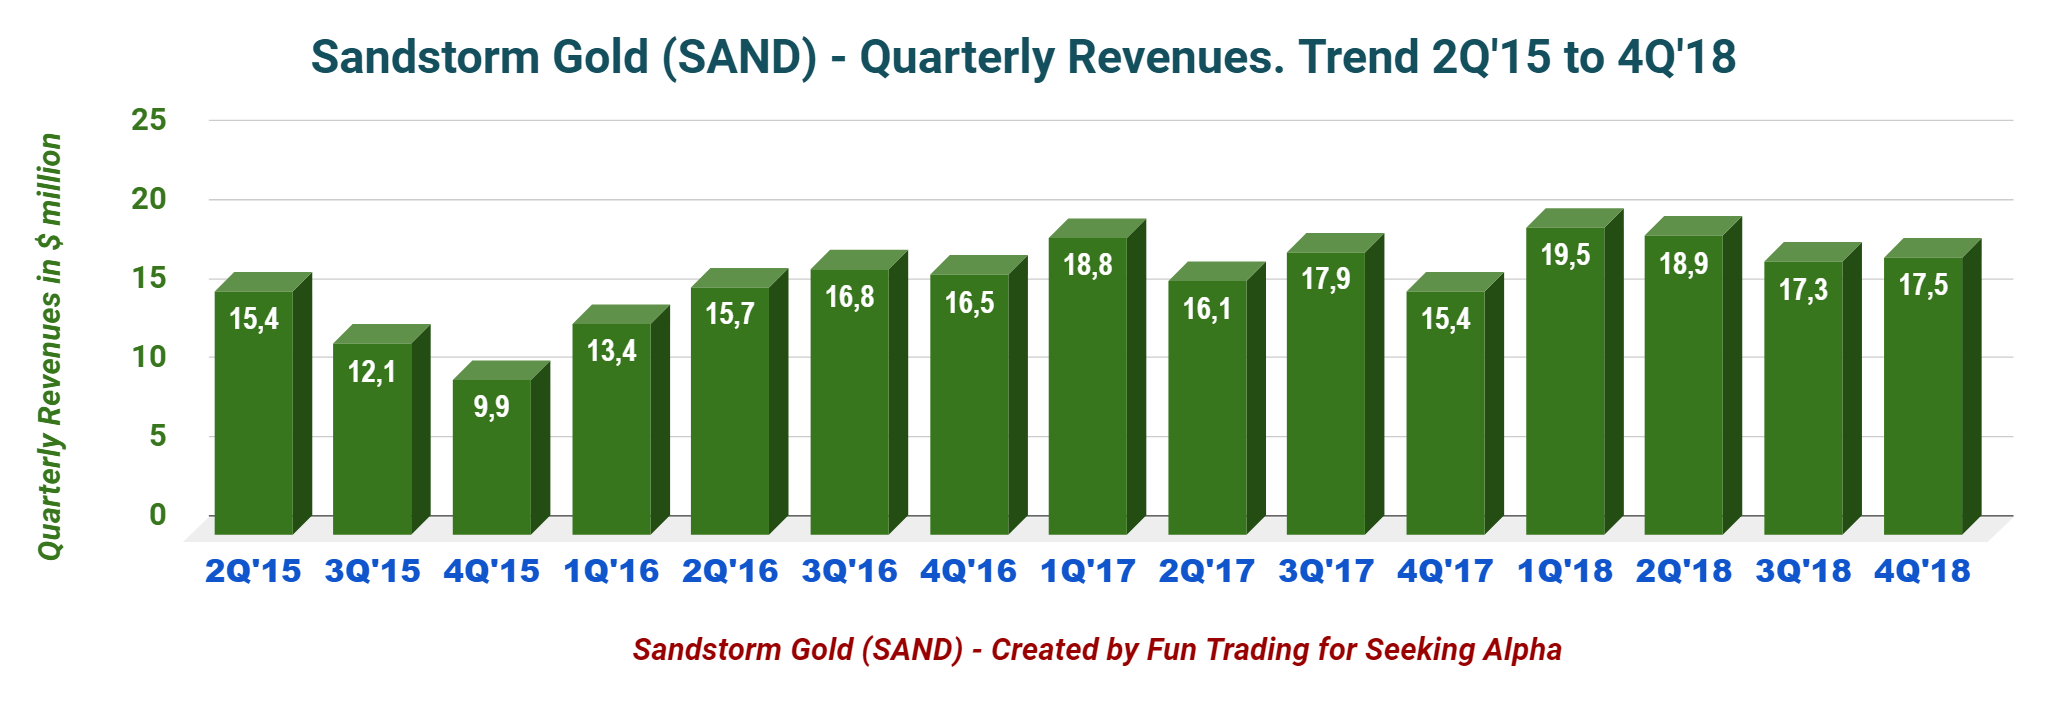 Gold Is Shining Again, So Is Sandstorm Gold